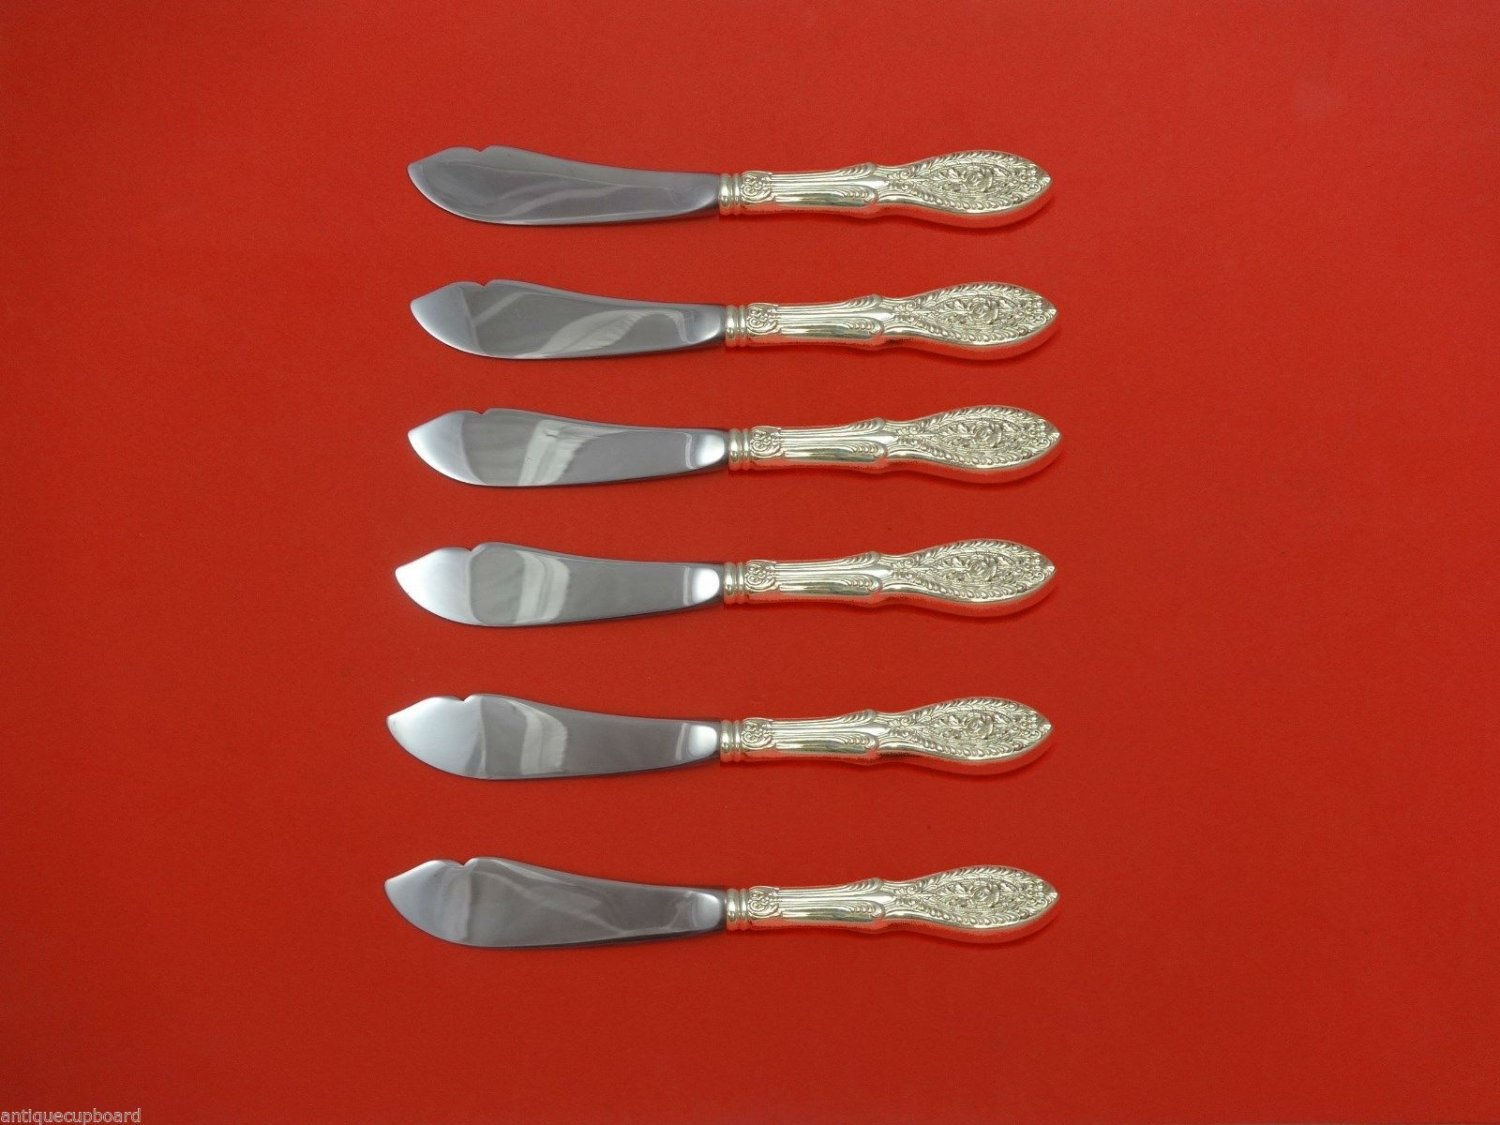 Valenciennes by Manchester Sterling Silver Trout Knife Set 6pc. Custom 7 1/2""